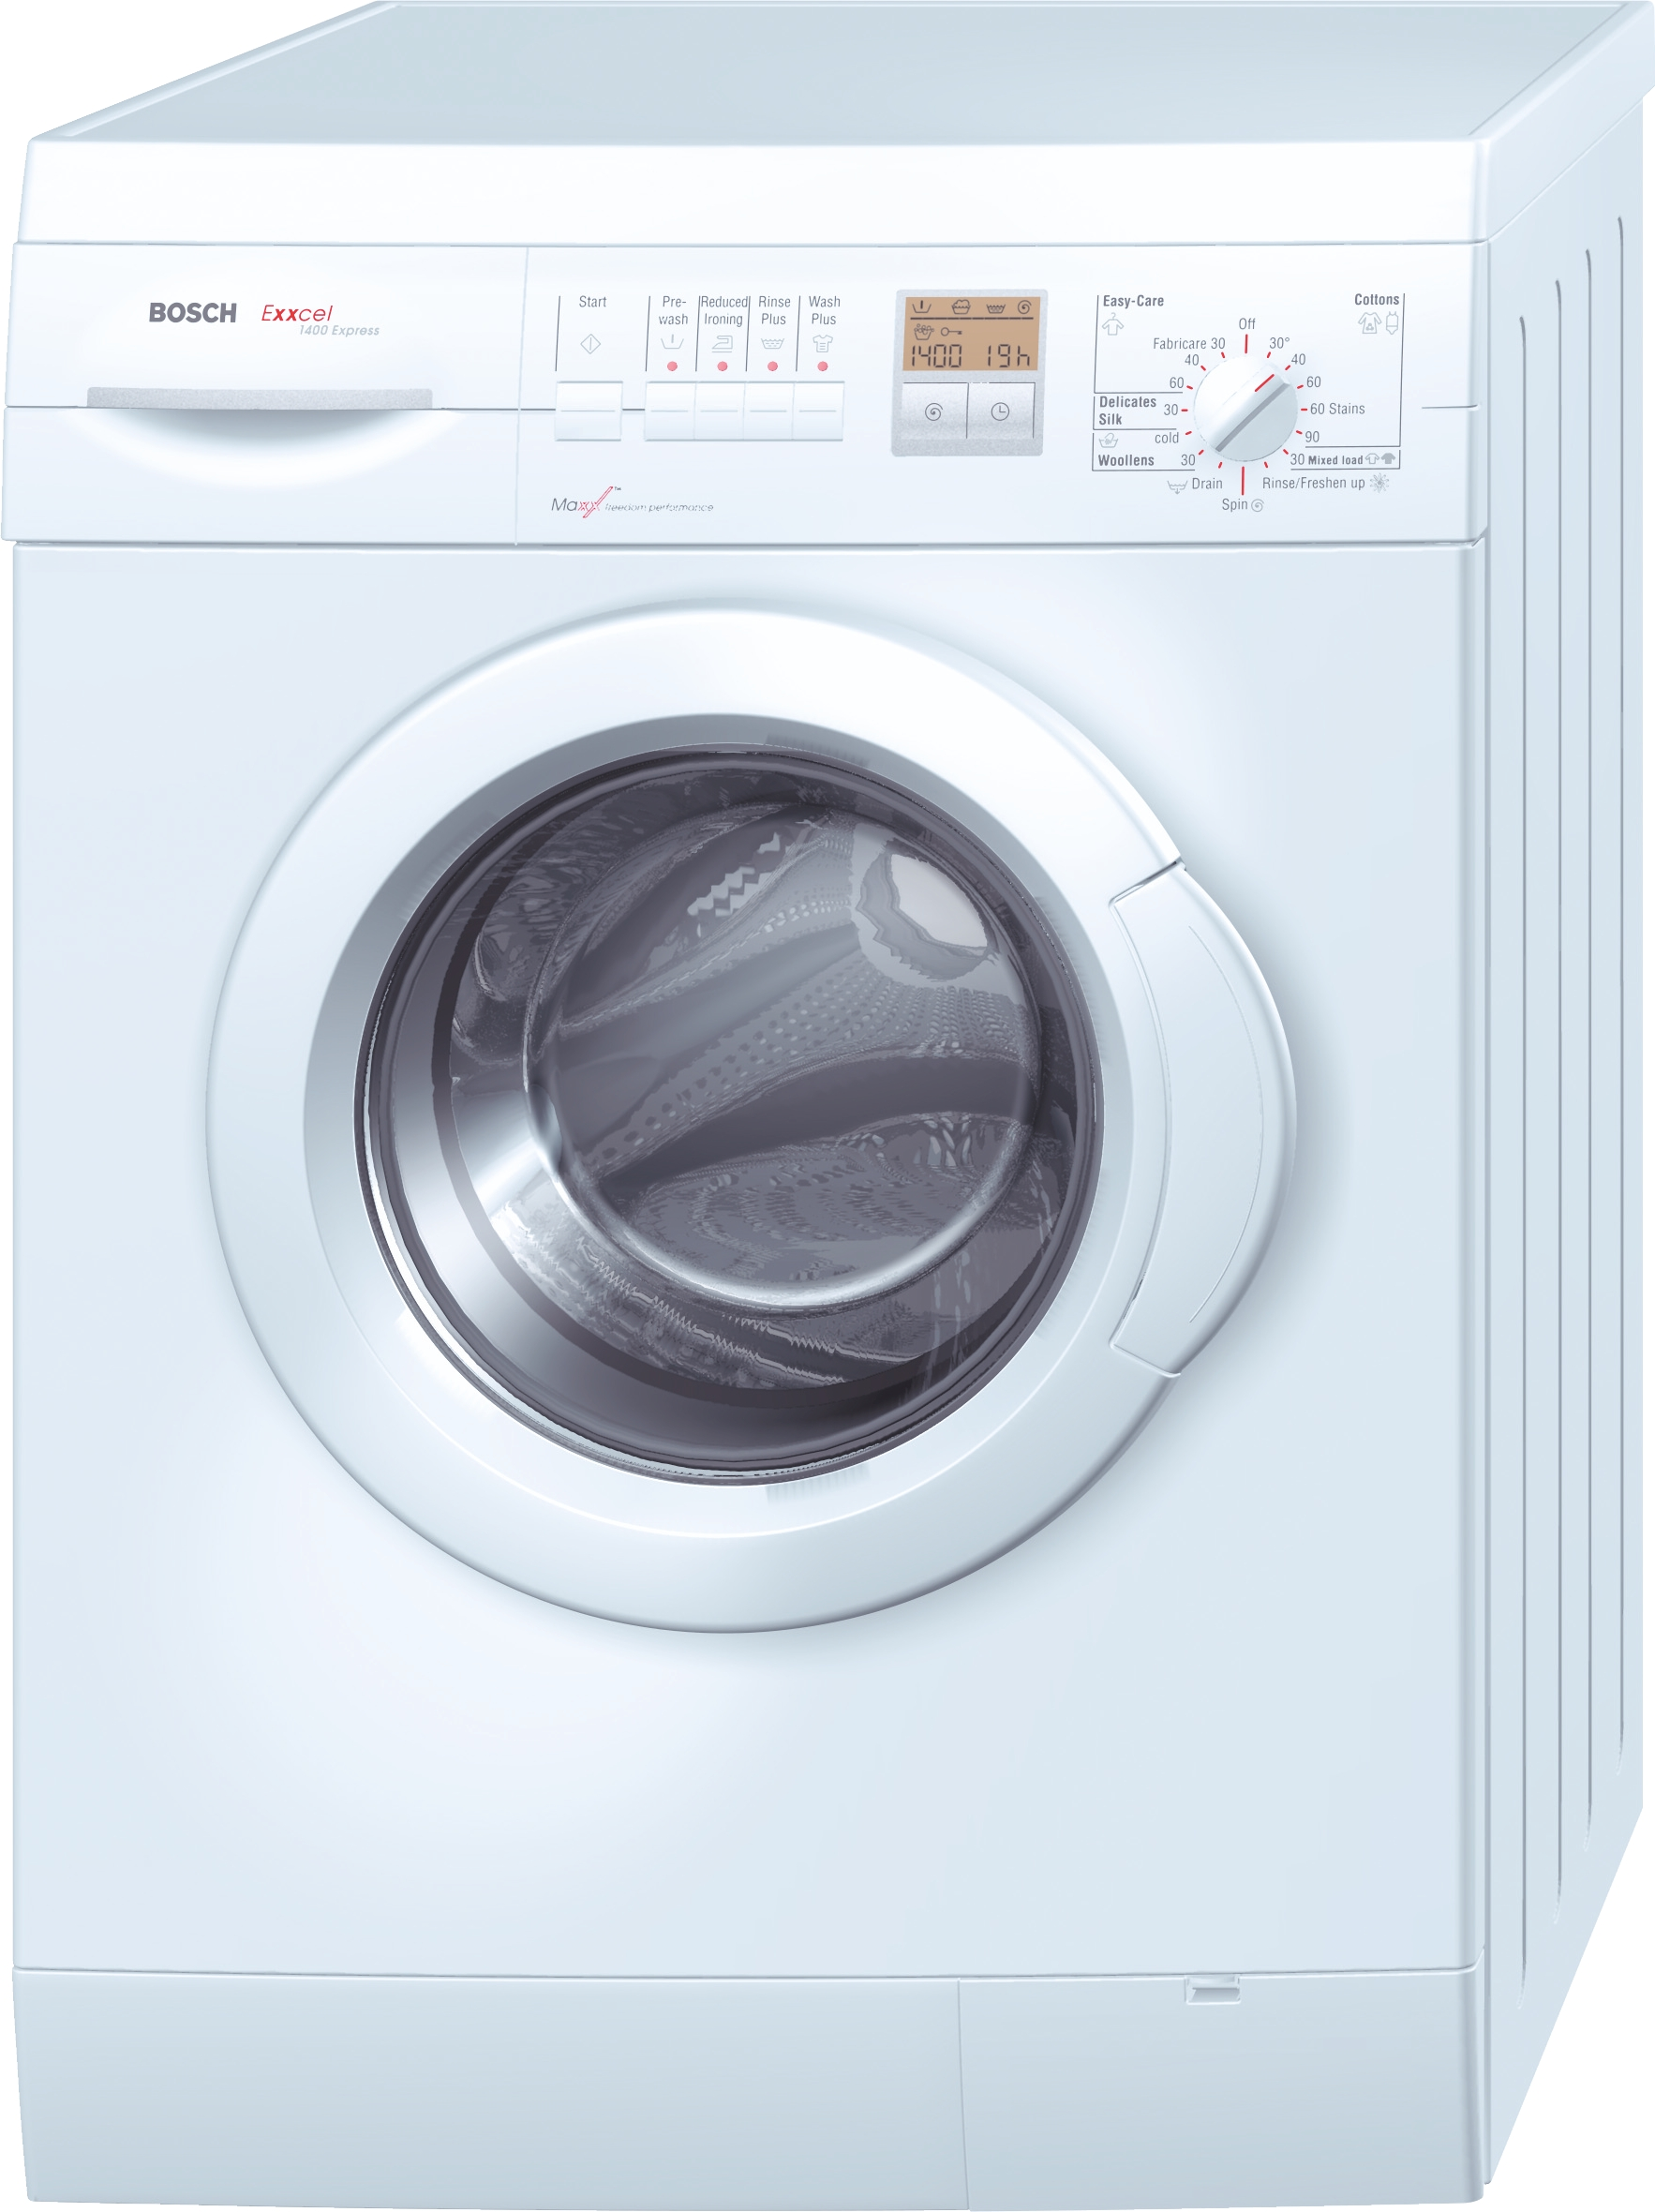 Bosch Washing Machines User Manual How To Troubleshooting Manual